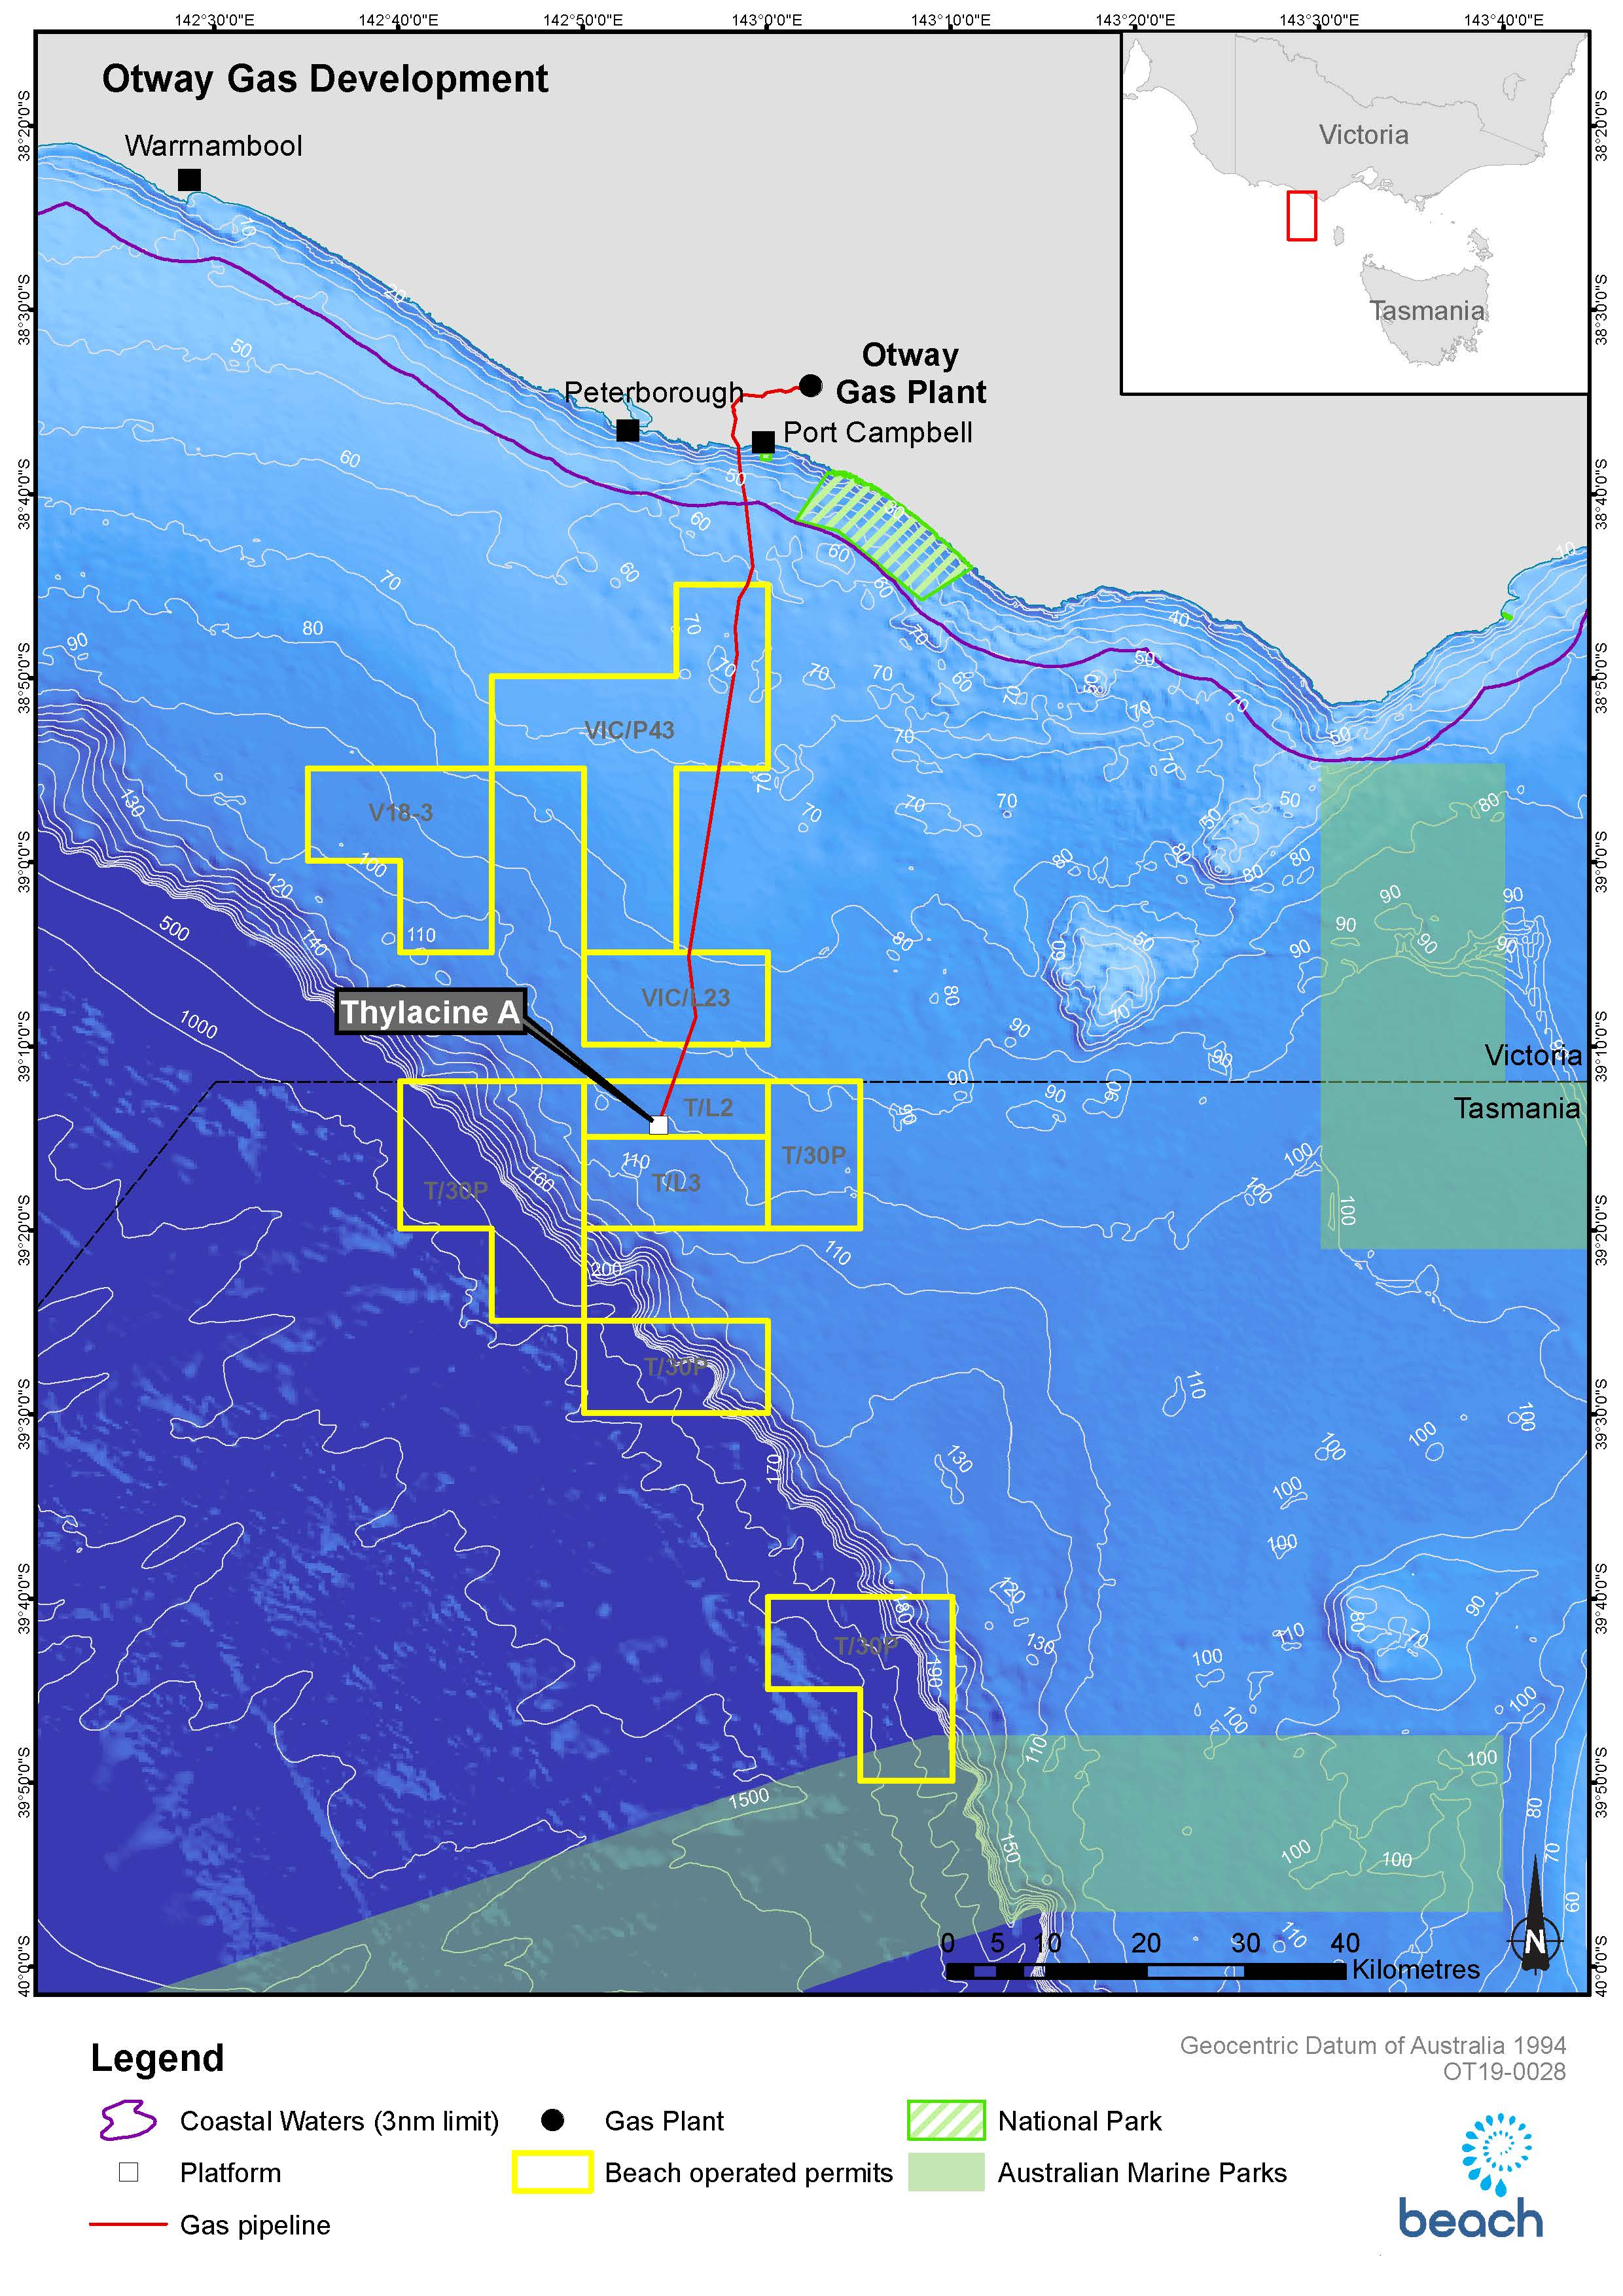 Project map - Otway Offshore Development  (Thylacine and Geographe) (refer to Description)